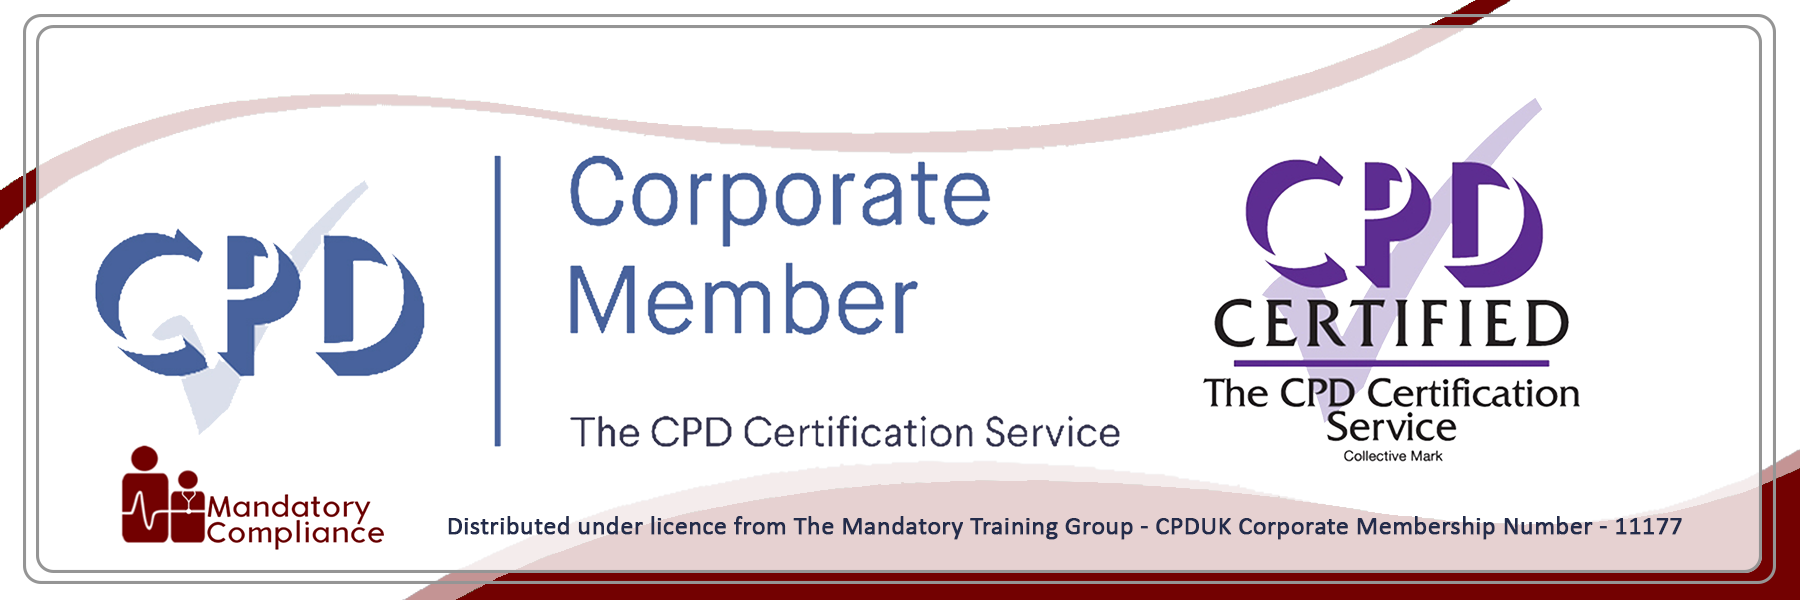 Cyber Security Training- Online Course - CPDUK Accredited - Mandatory Compliance UK -